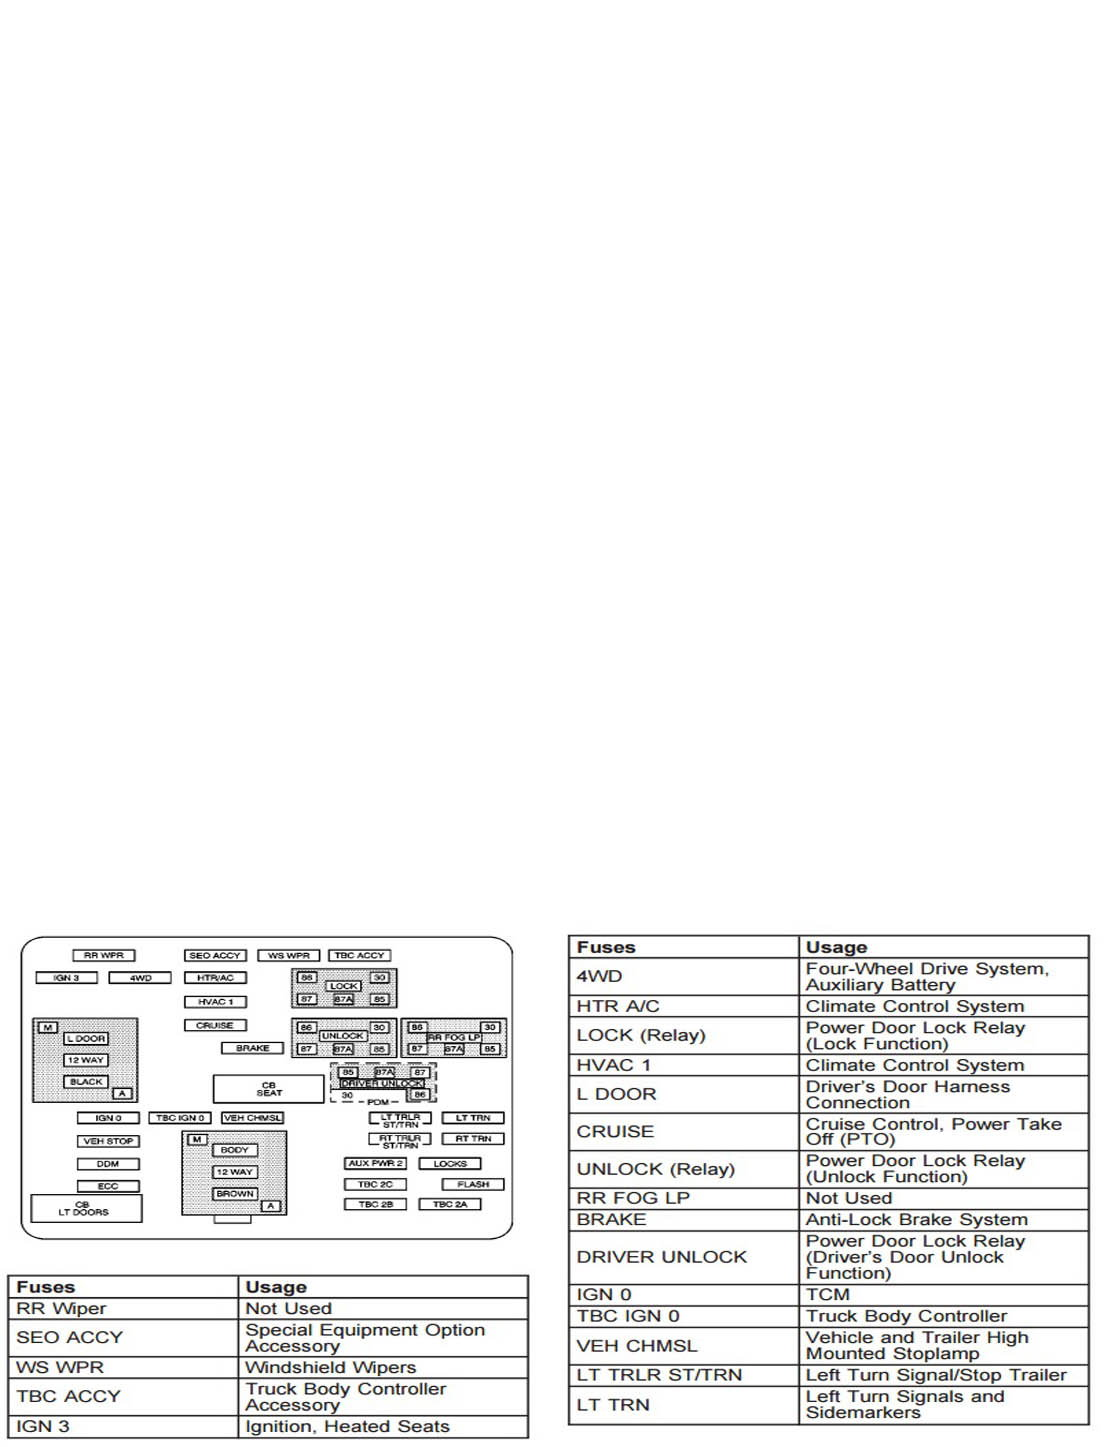 2006 Chevy Tahoe Fuse Box Diagram Simple Electrical Wiring 2010 Chevrolet Silverado Gmt800 1999 Chevroletforum 2004